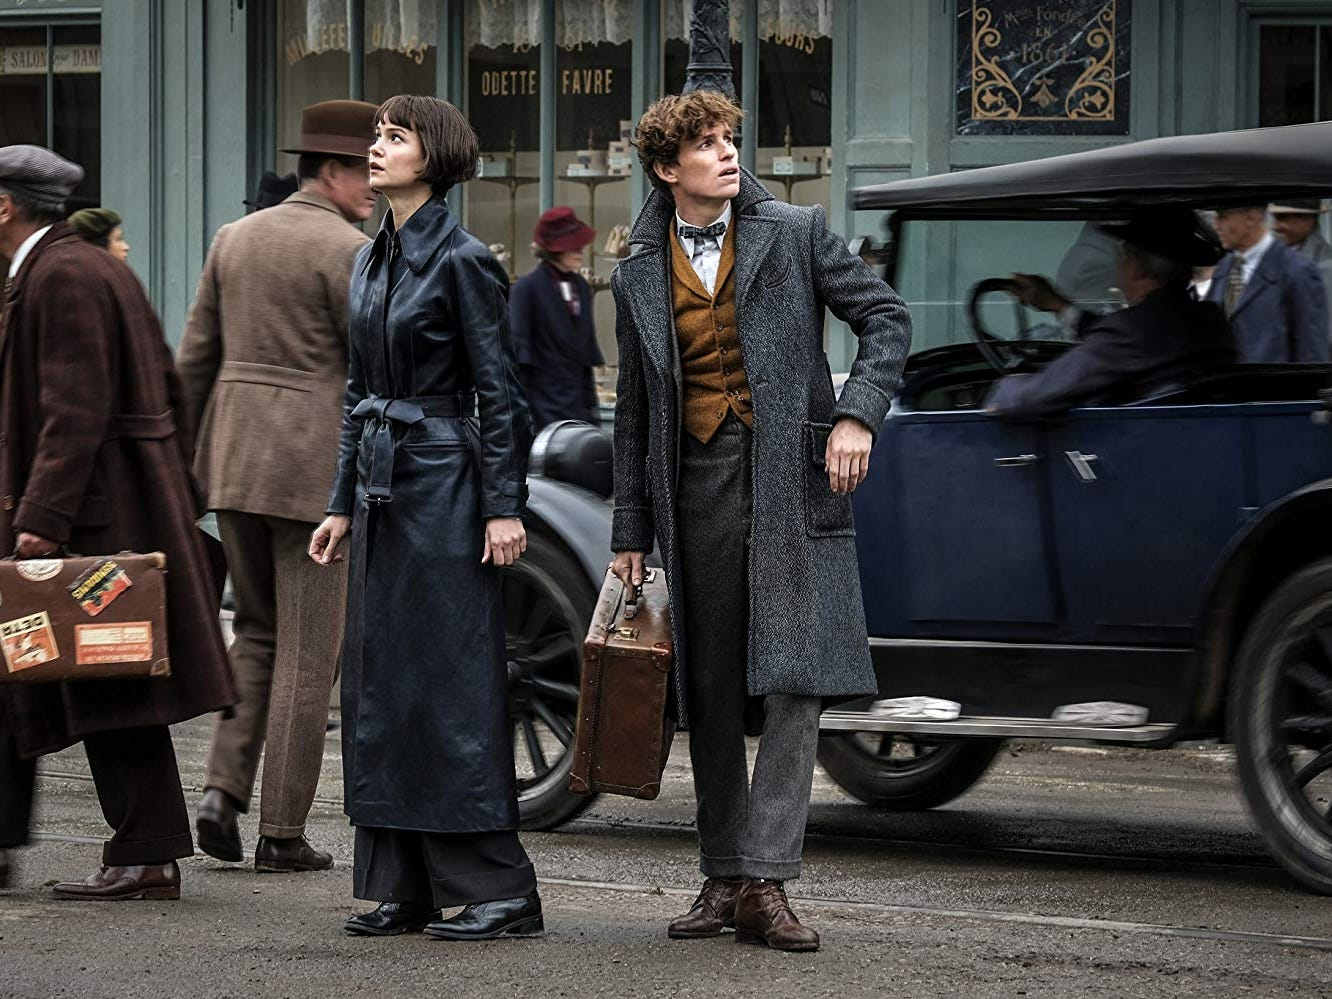 Review: Not-so-fantastic 'Beasts' spins its wheels